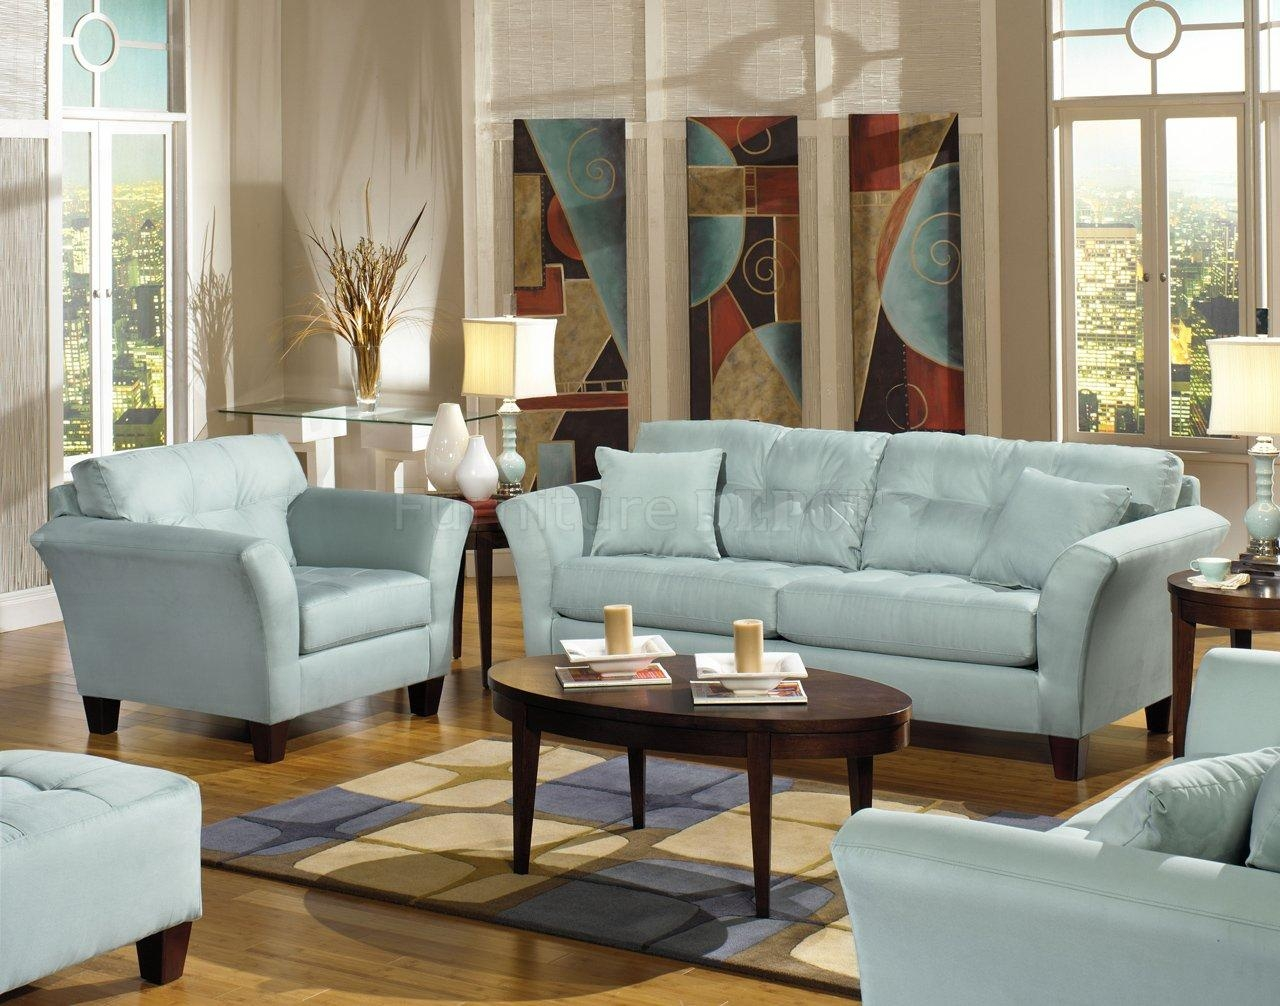 ▻ Sofa : 34 Living Room Living Room Sets For Sale Wonderful Within Sky Blue Sofas (Image 1 of 20)